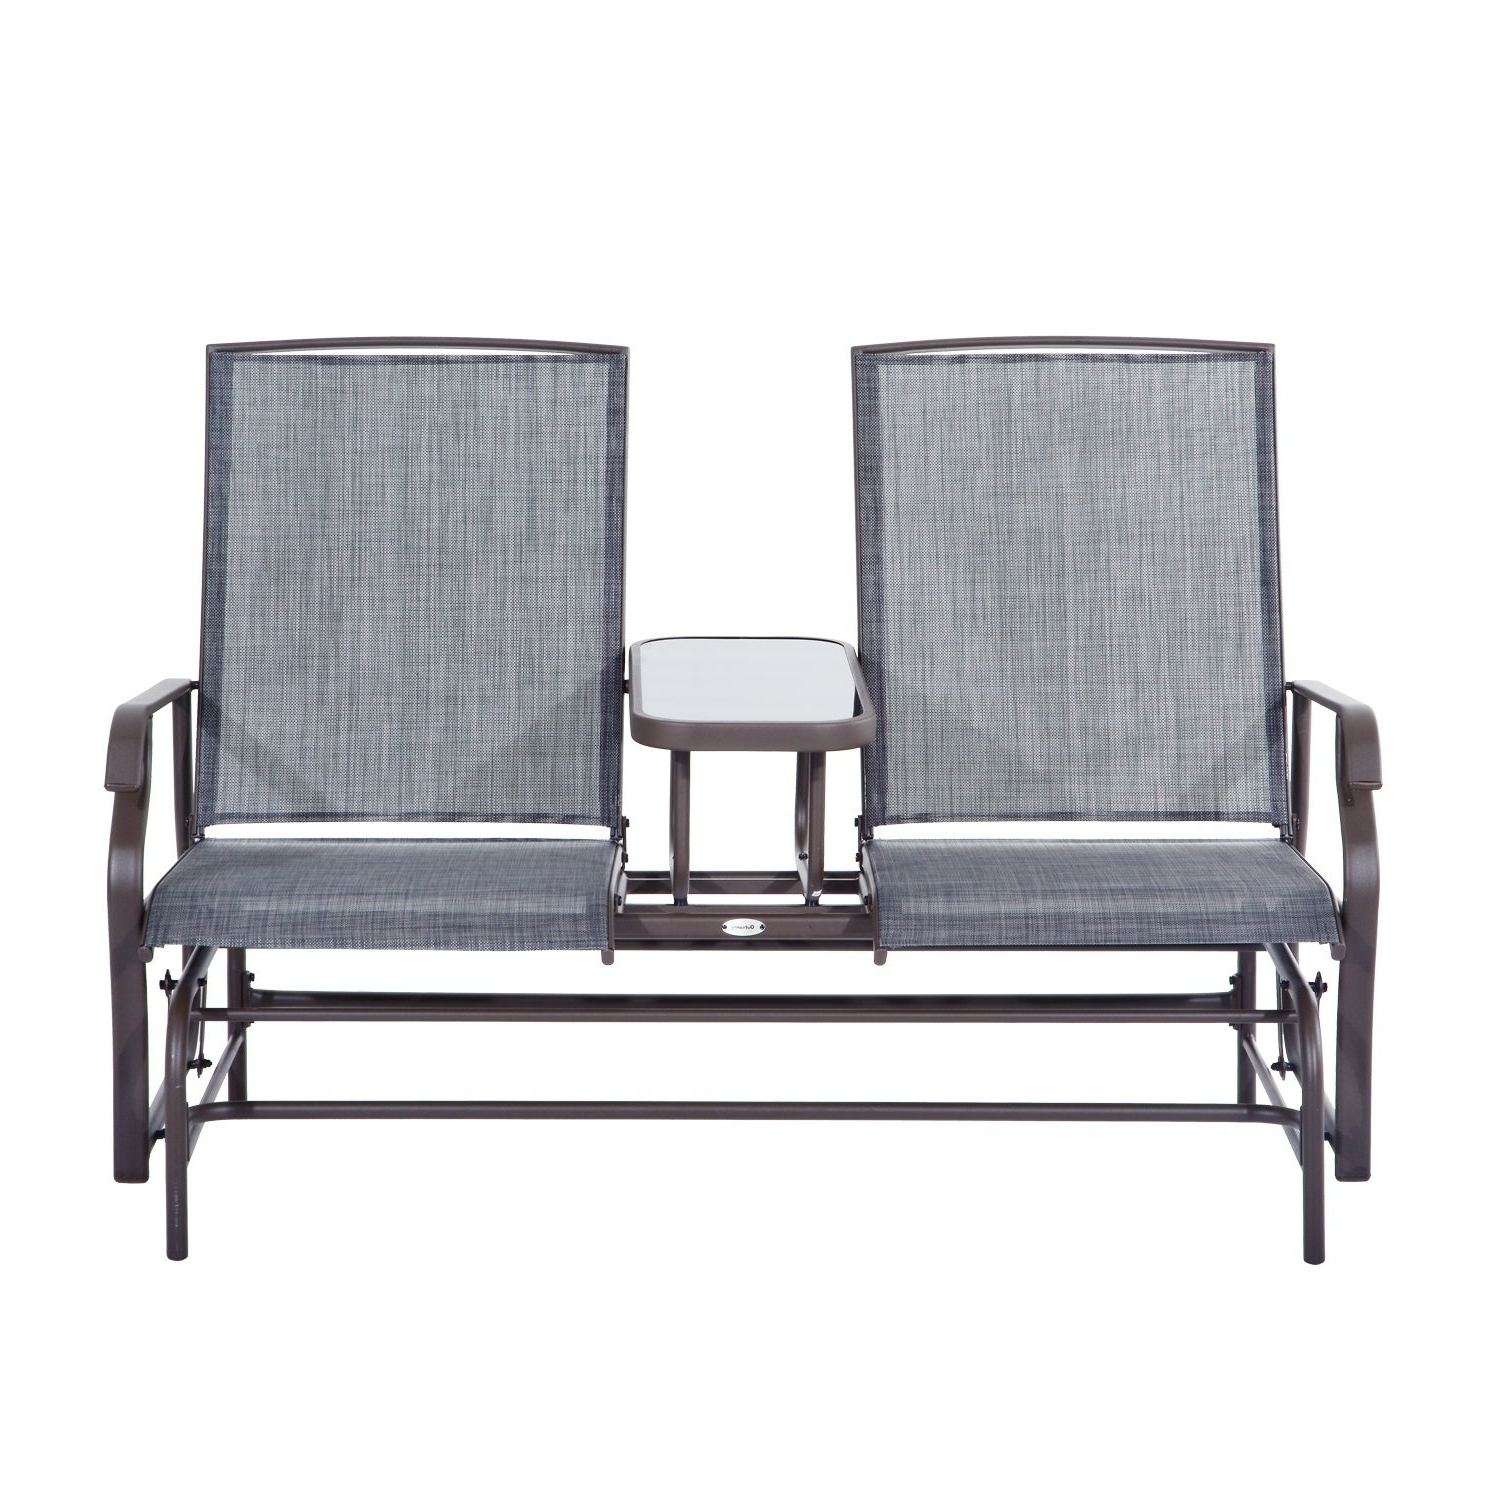 Outsunny Two Person Outdoor Mesh Fabric Patio Double Glider Chair With Center Table Throughout Most Current Aluminum Outdoor Double Glider Benches (Gallery 24 of 30)